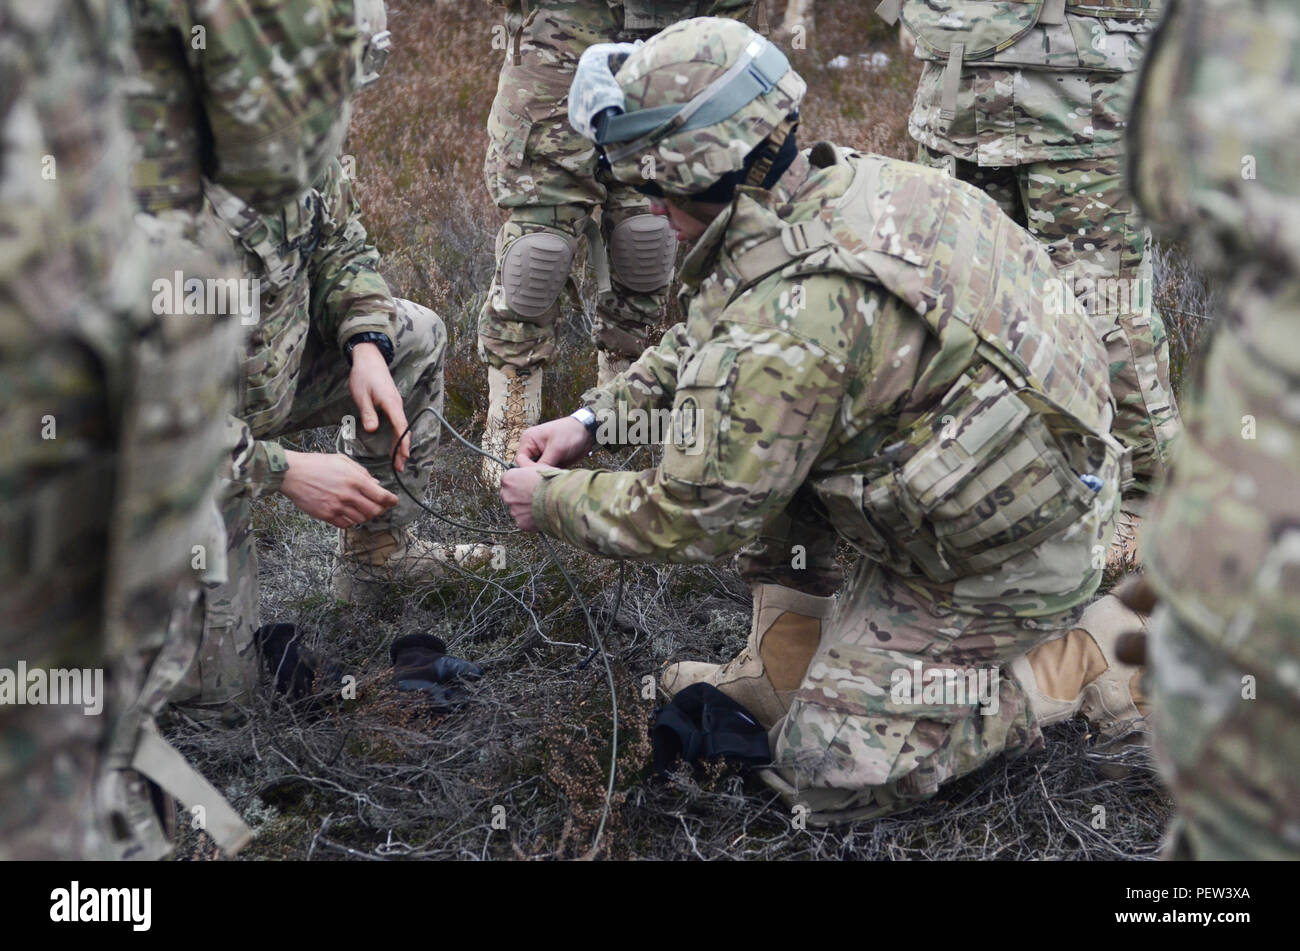 Soldiers of 3rd Squadron, 2nd Cavalry Regiment, stationed out of Vilseck, Germany, prepare the fuse lines for the improvised explosive devices during a demolition exercise at Adazi Training Area in Latvia, Jan. 29, 2016. (Photo by Staff Sgt. Steven Colvin/Released) - Stock Image